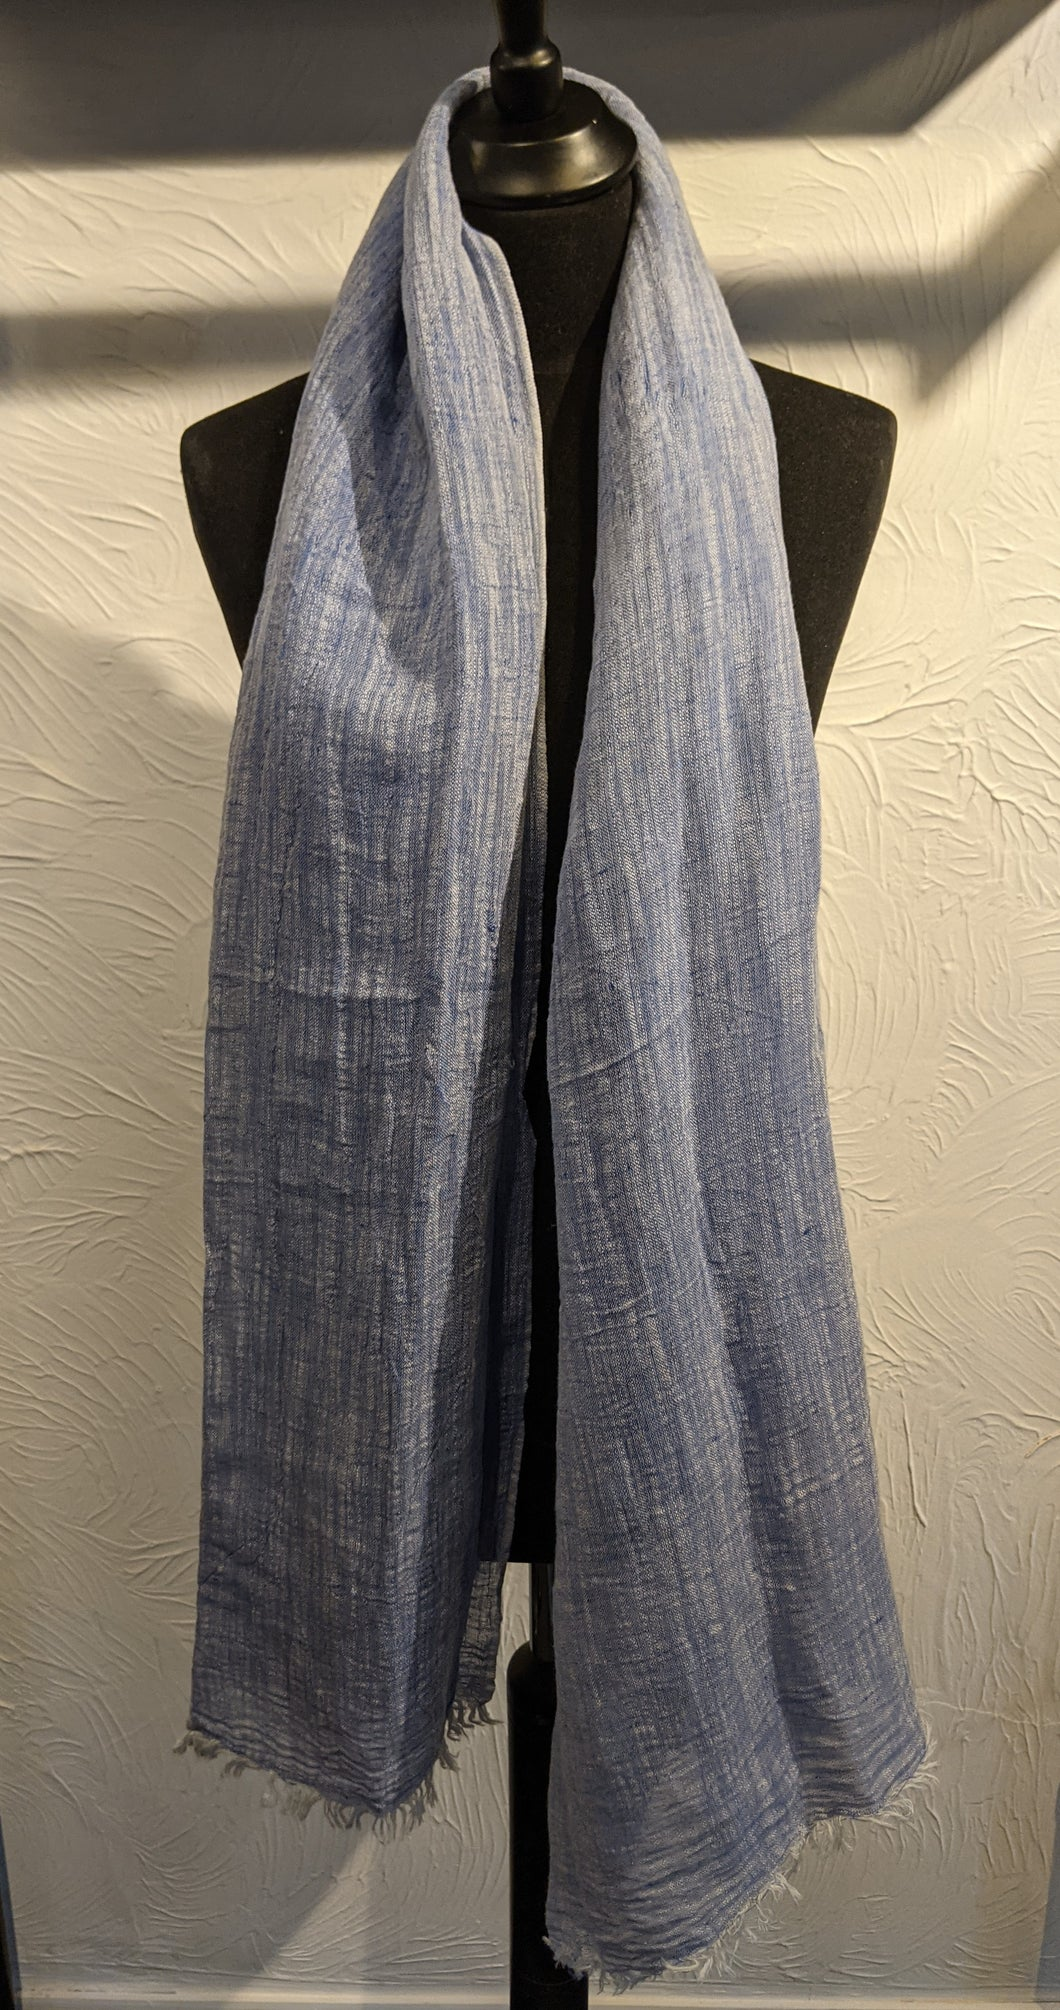 LINEN SCARF - Chambray Effect